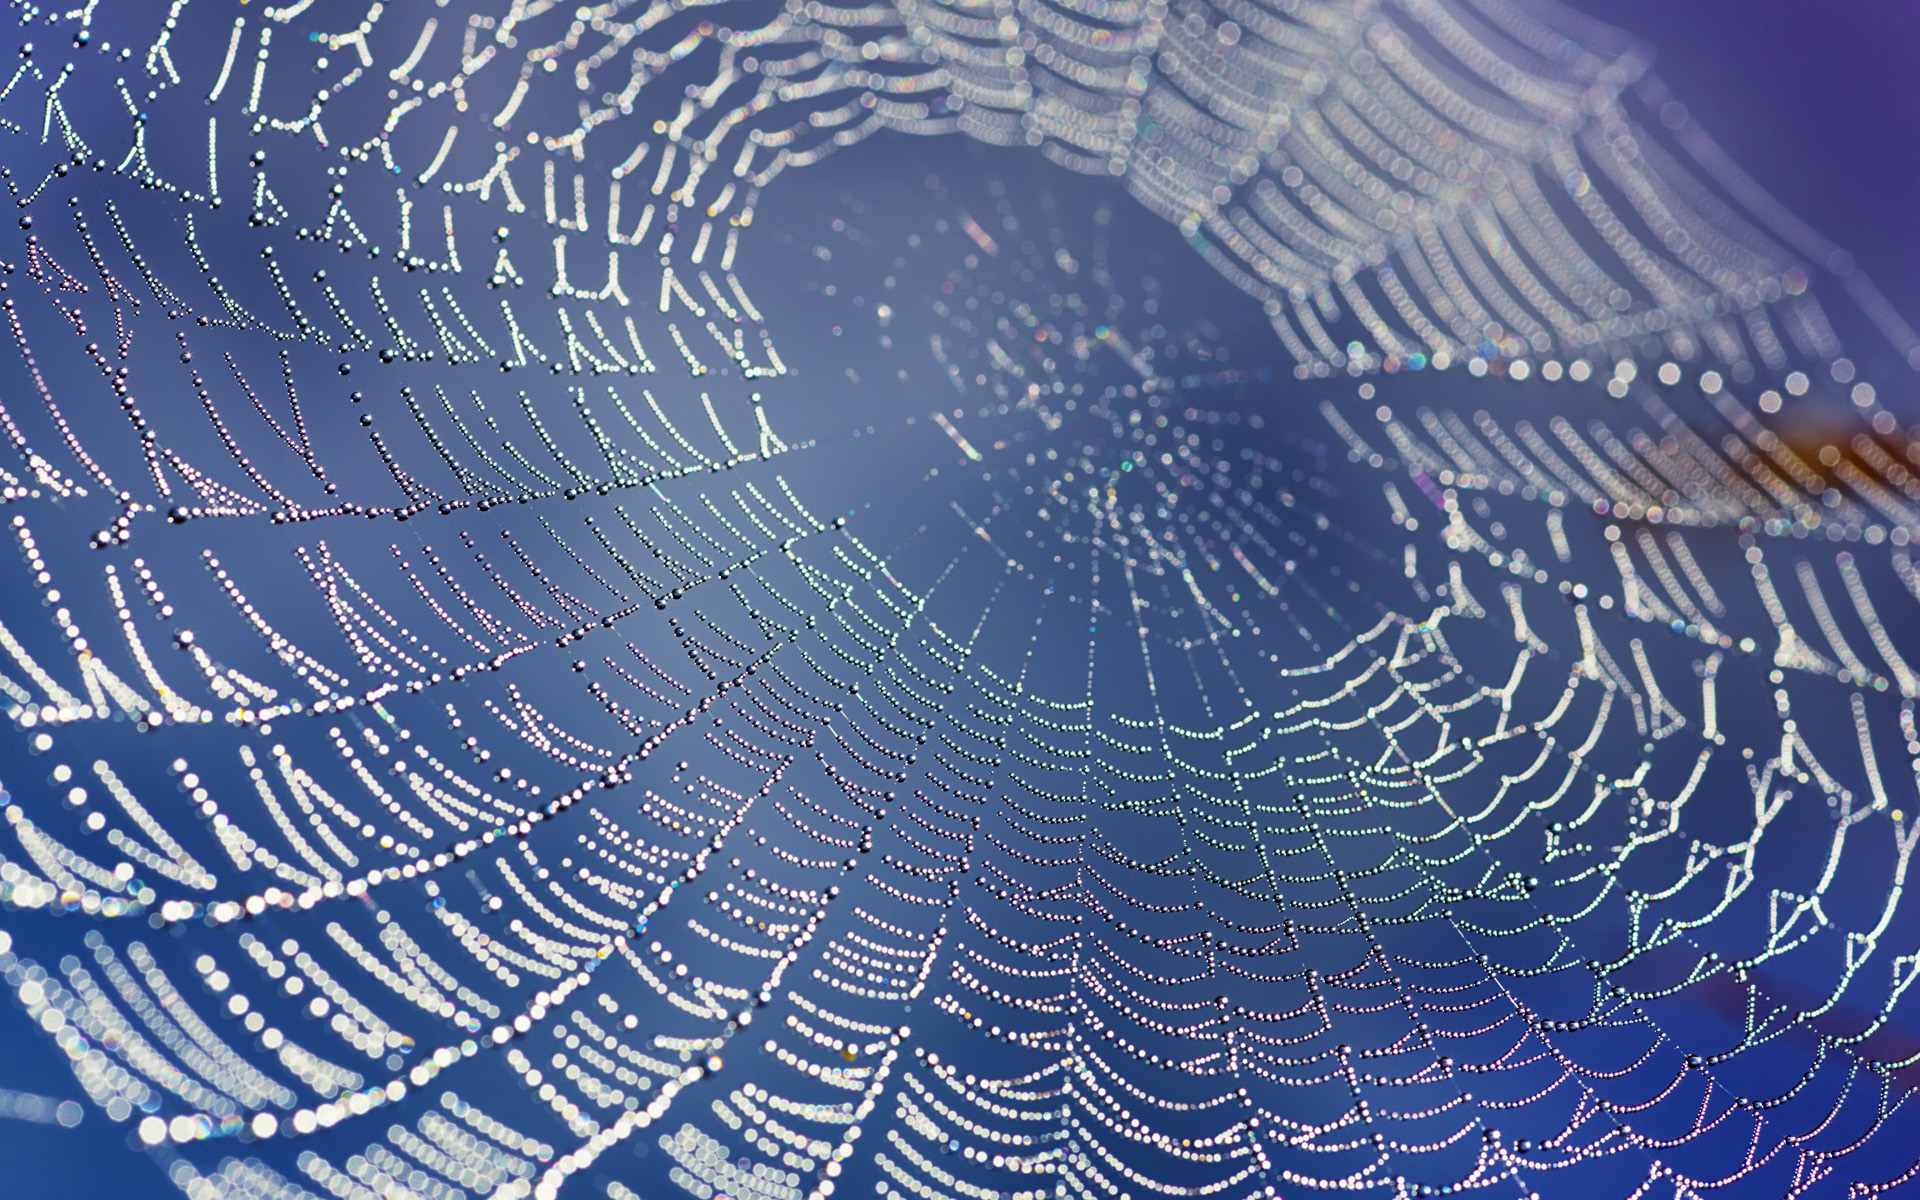 Spiderman Hd Wallpaper 17 Incredible Spiderweb Wallpapers With Water Drops And